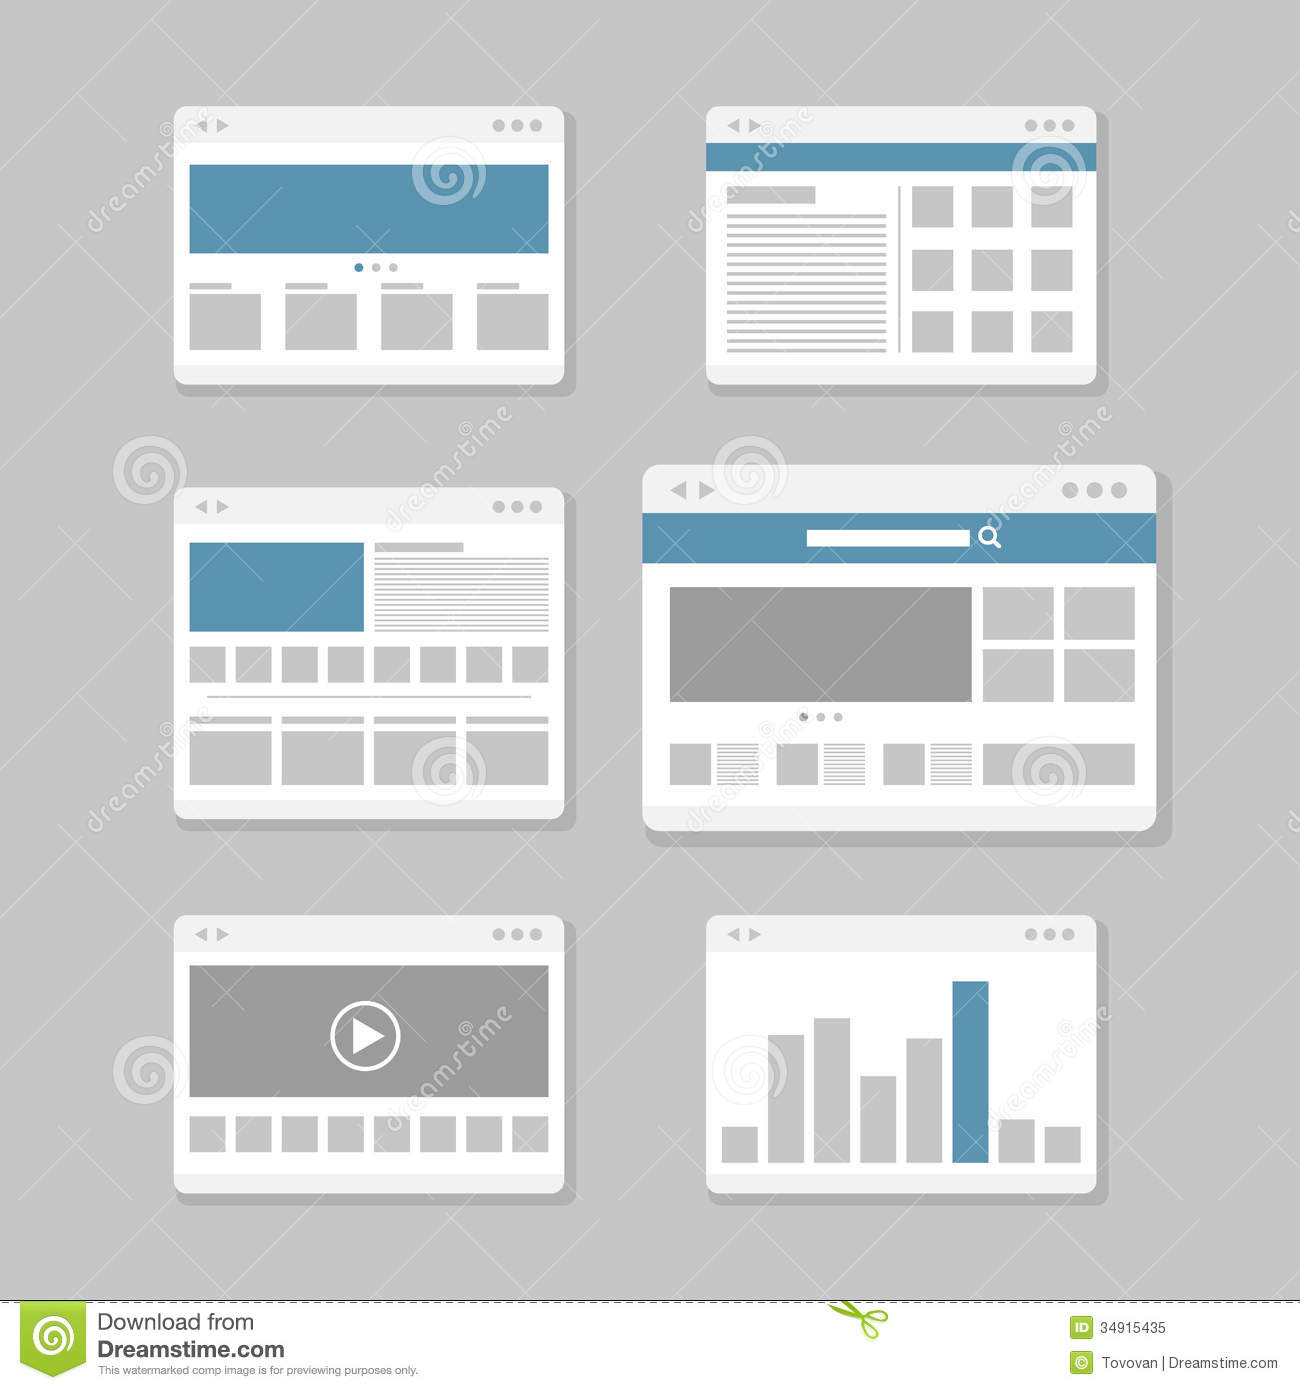 Web site page templates stock vector. Illustration of minimalism ...